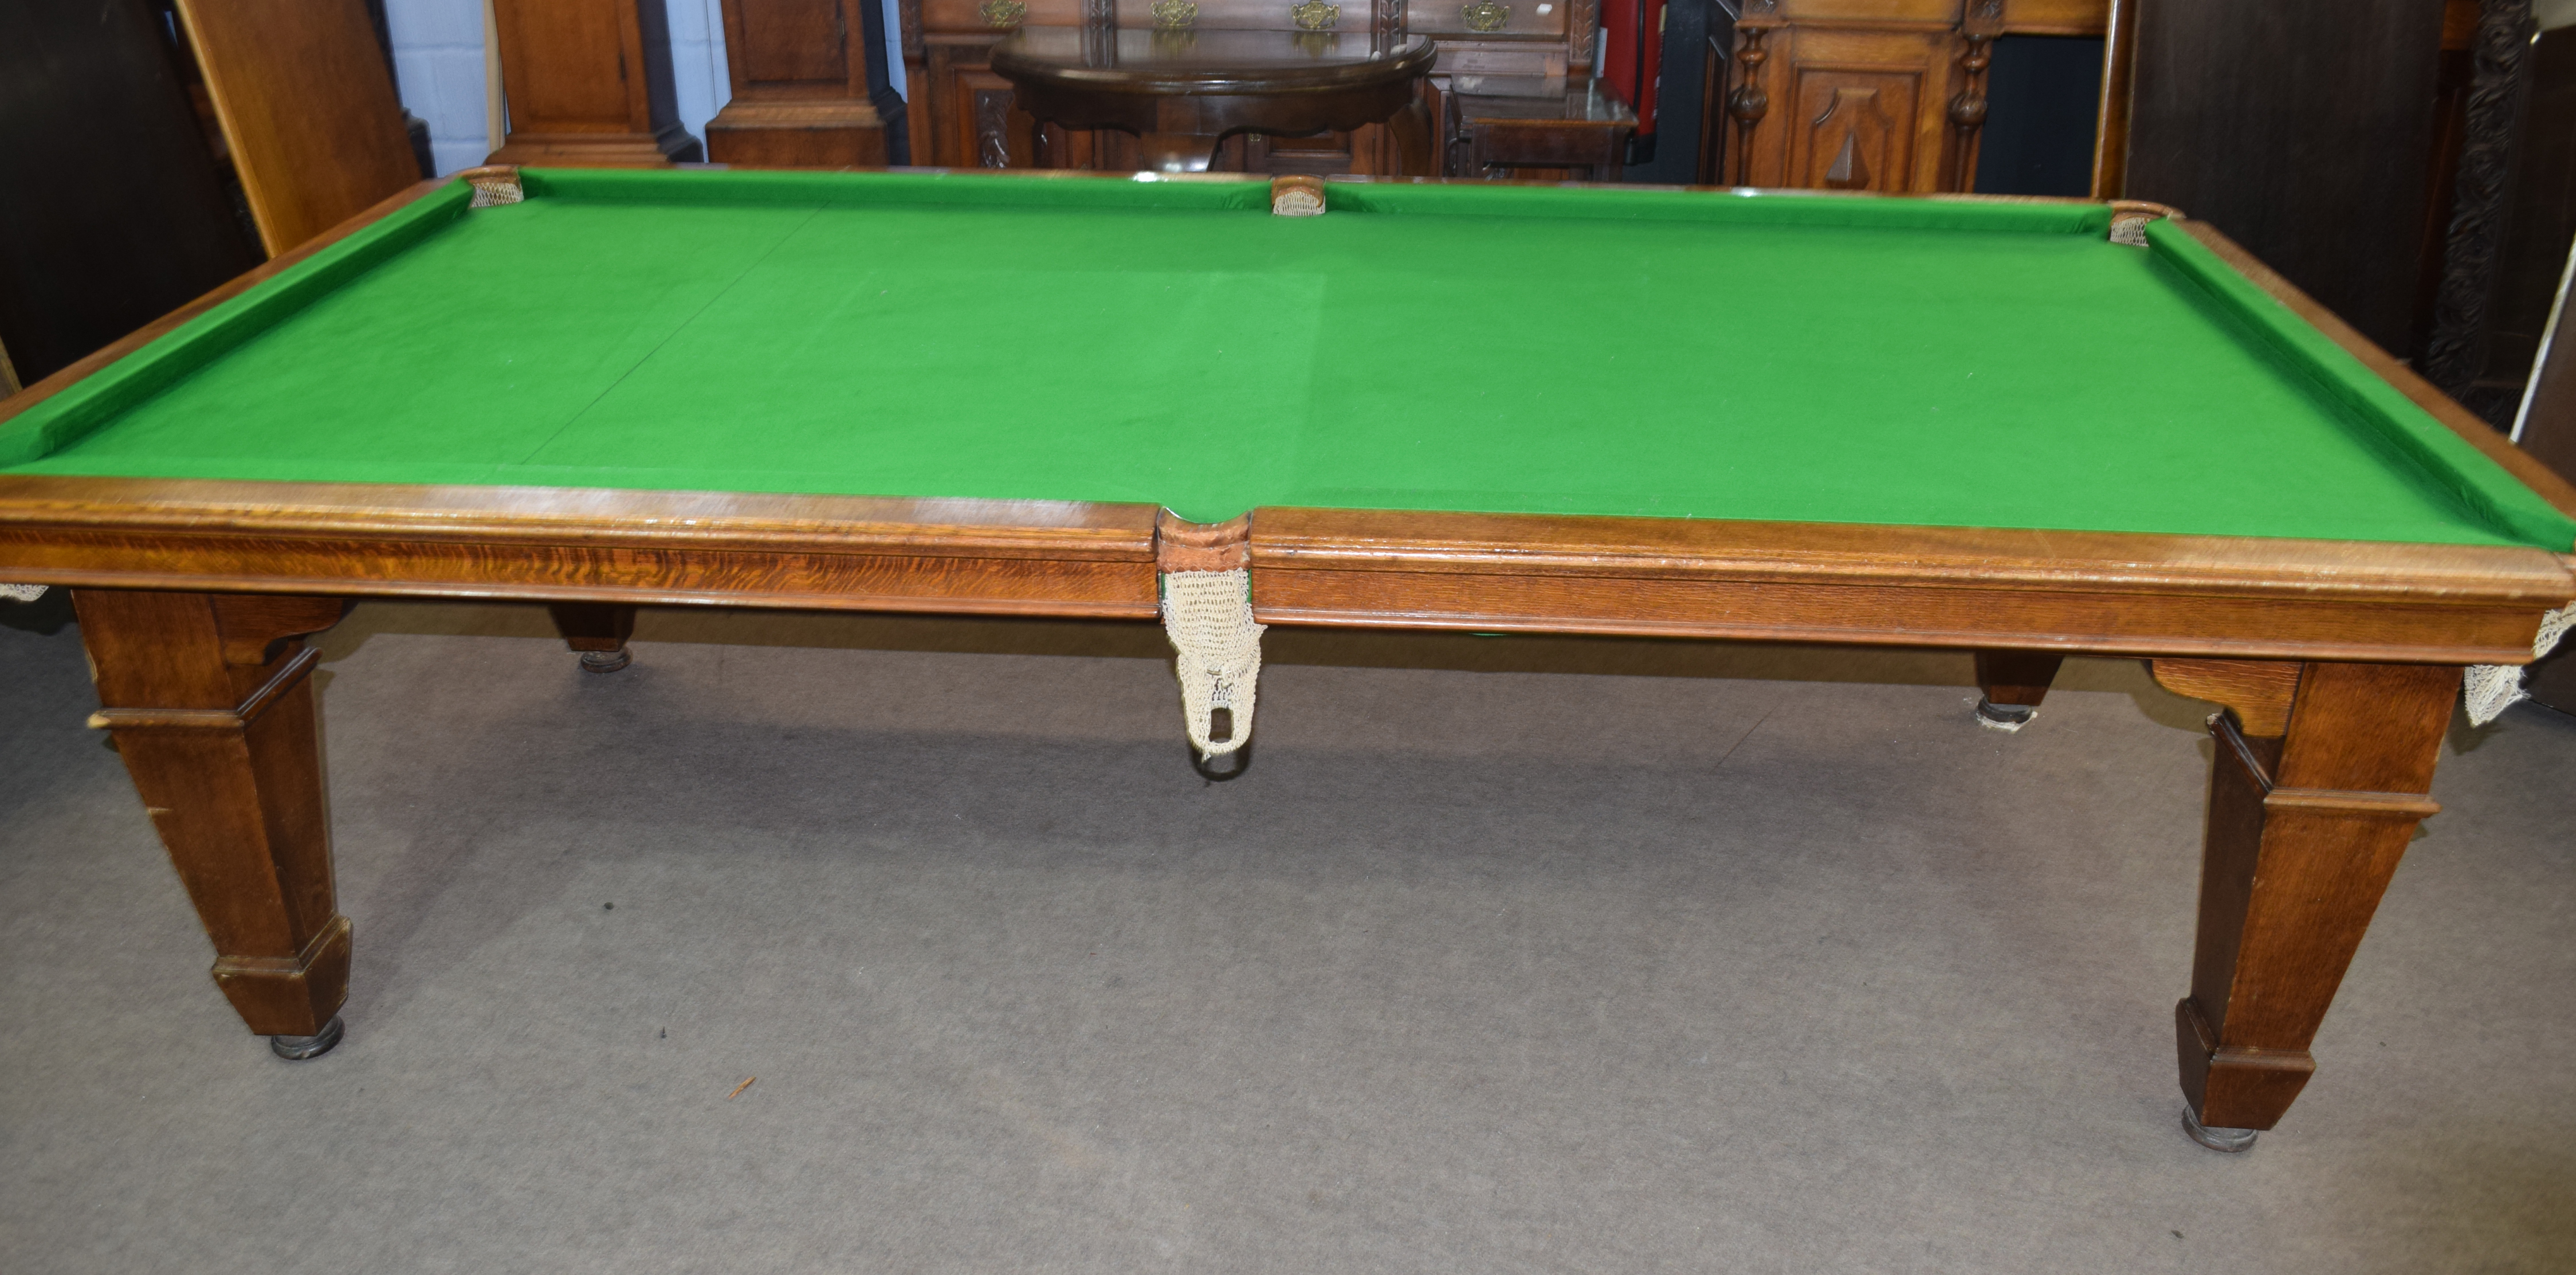 Oak frame and slate bed, quarter size snooker table with leaves adapting it to a dining table